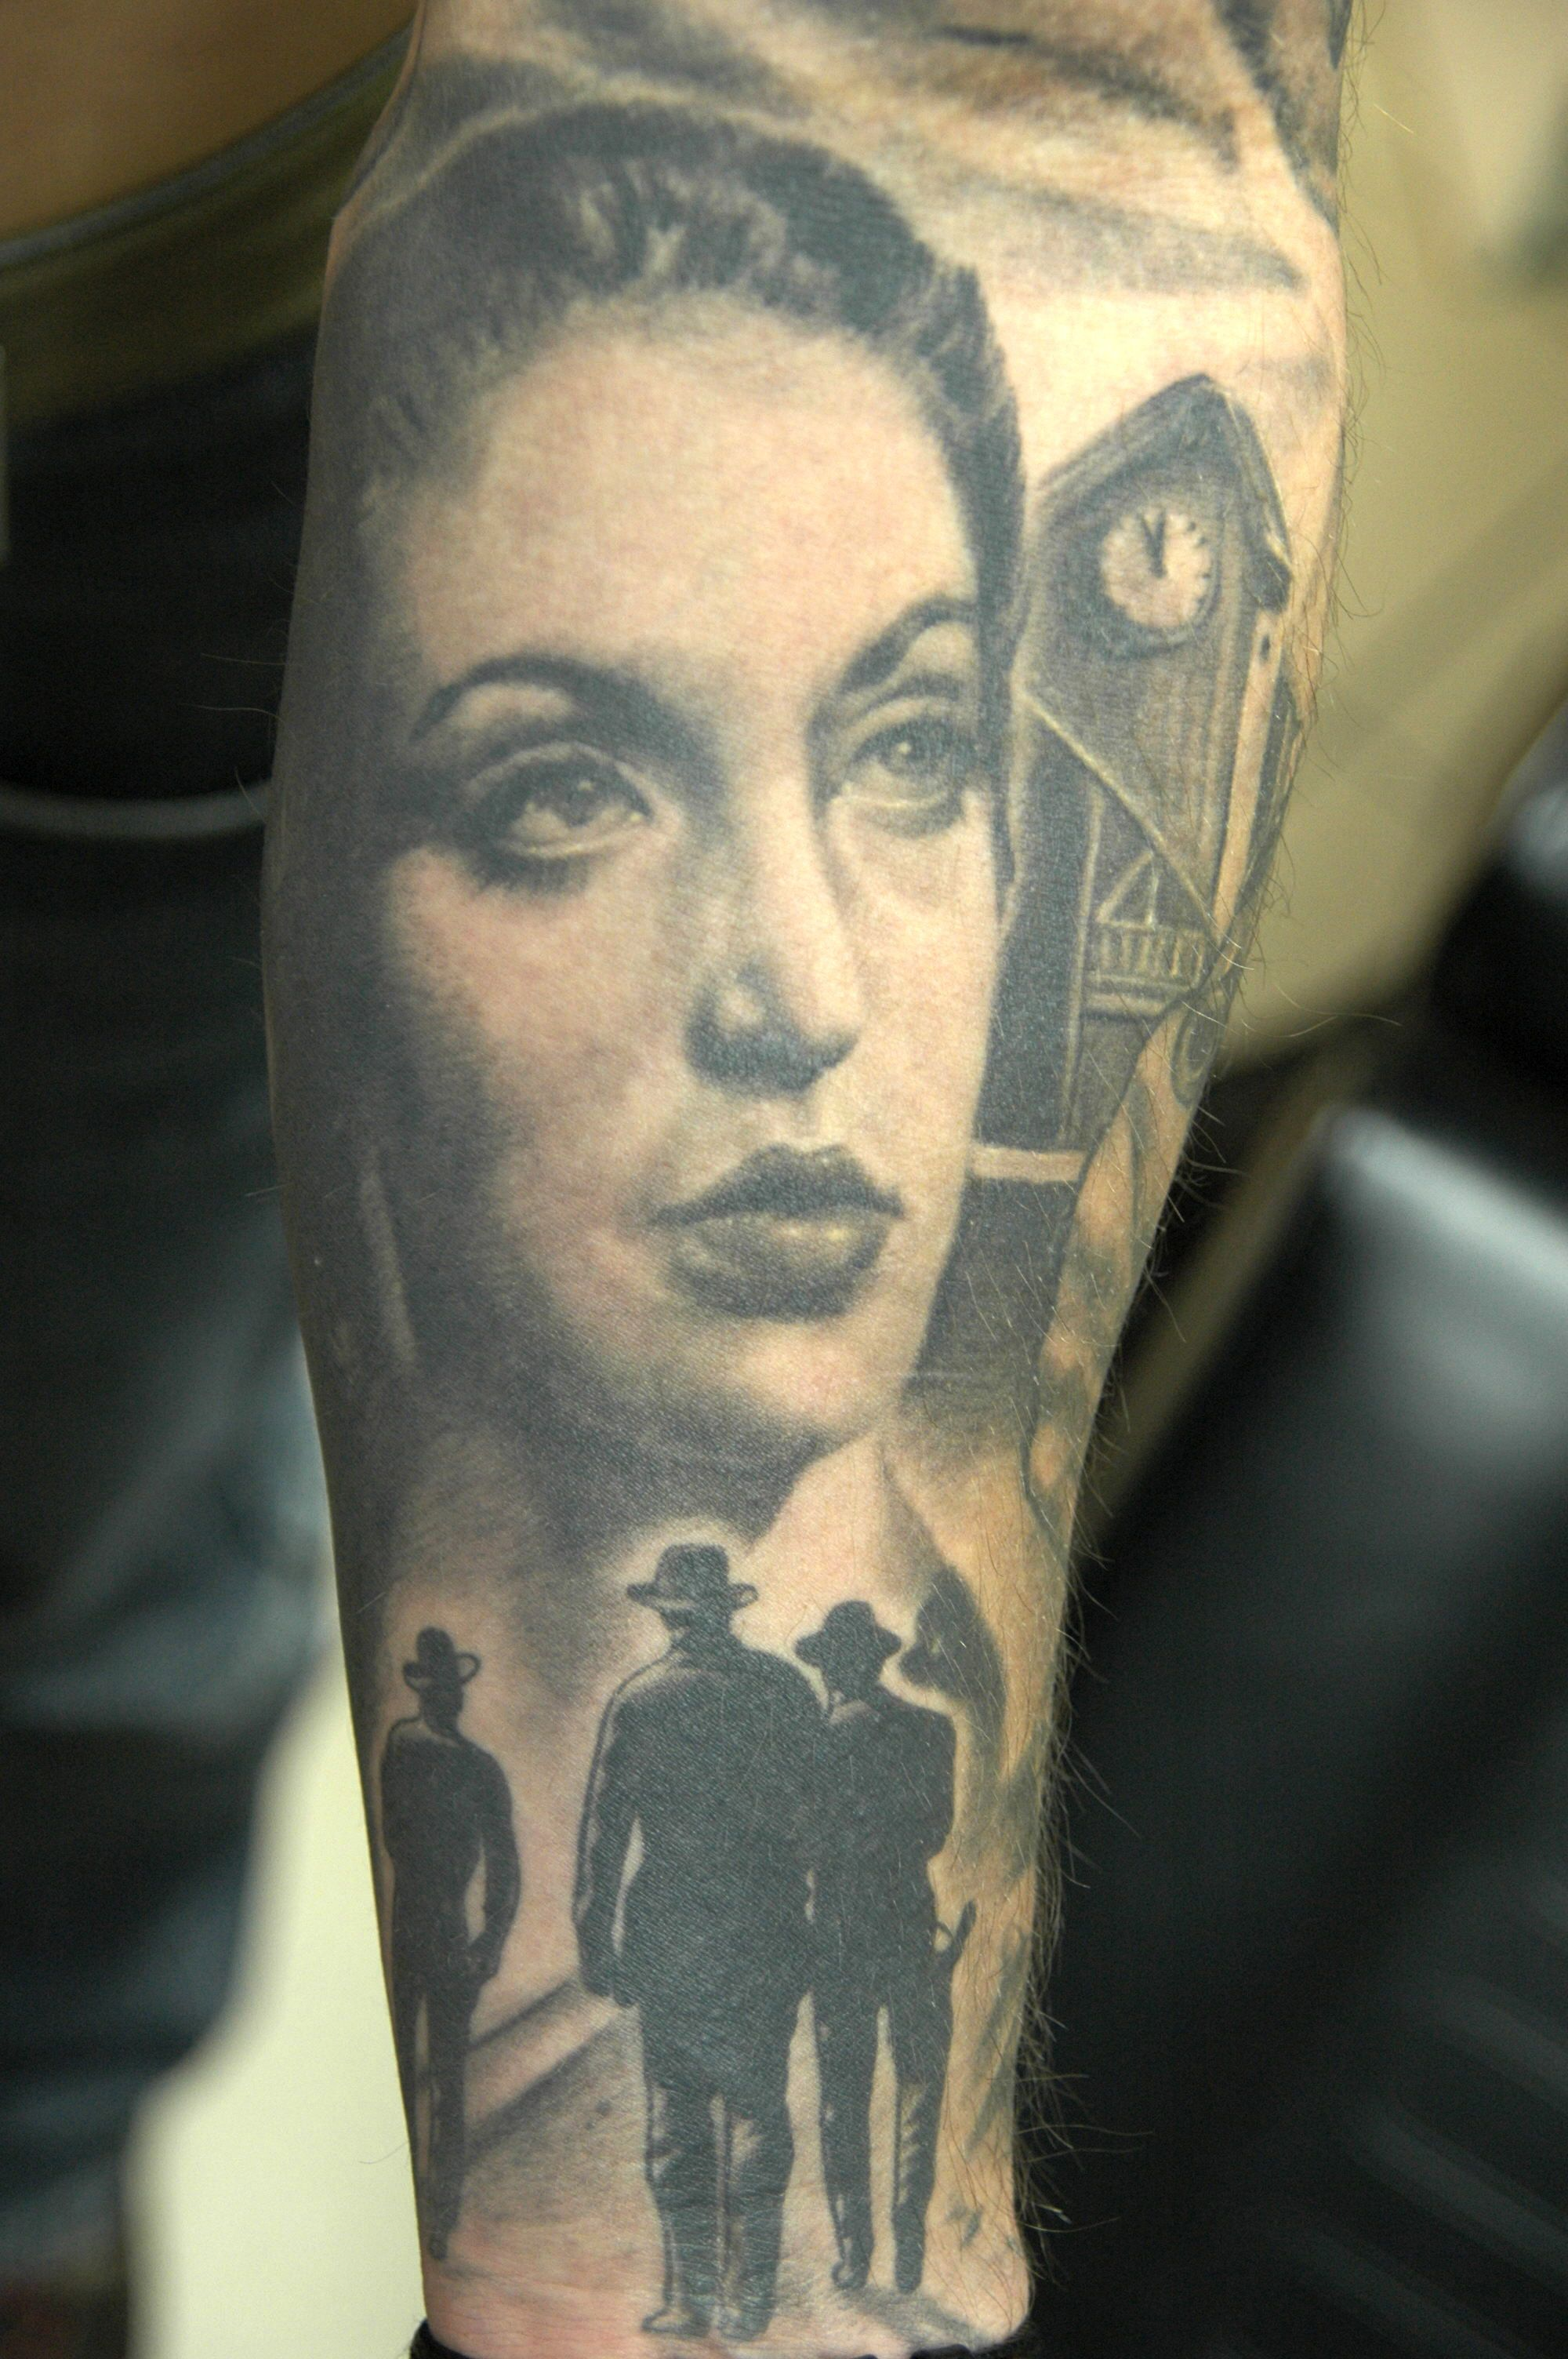 the best tattoo artists - Google Search | Art: Admired Ink ...